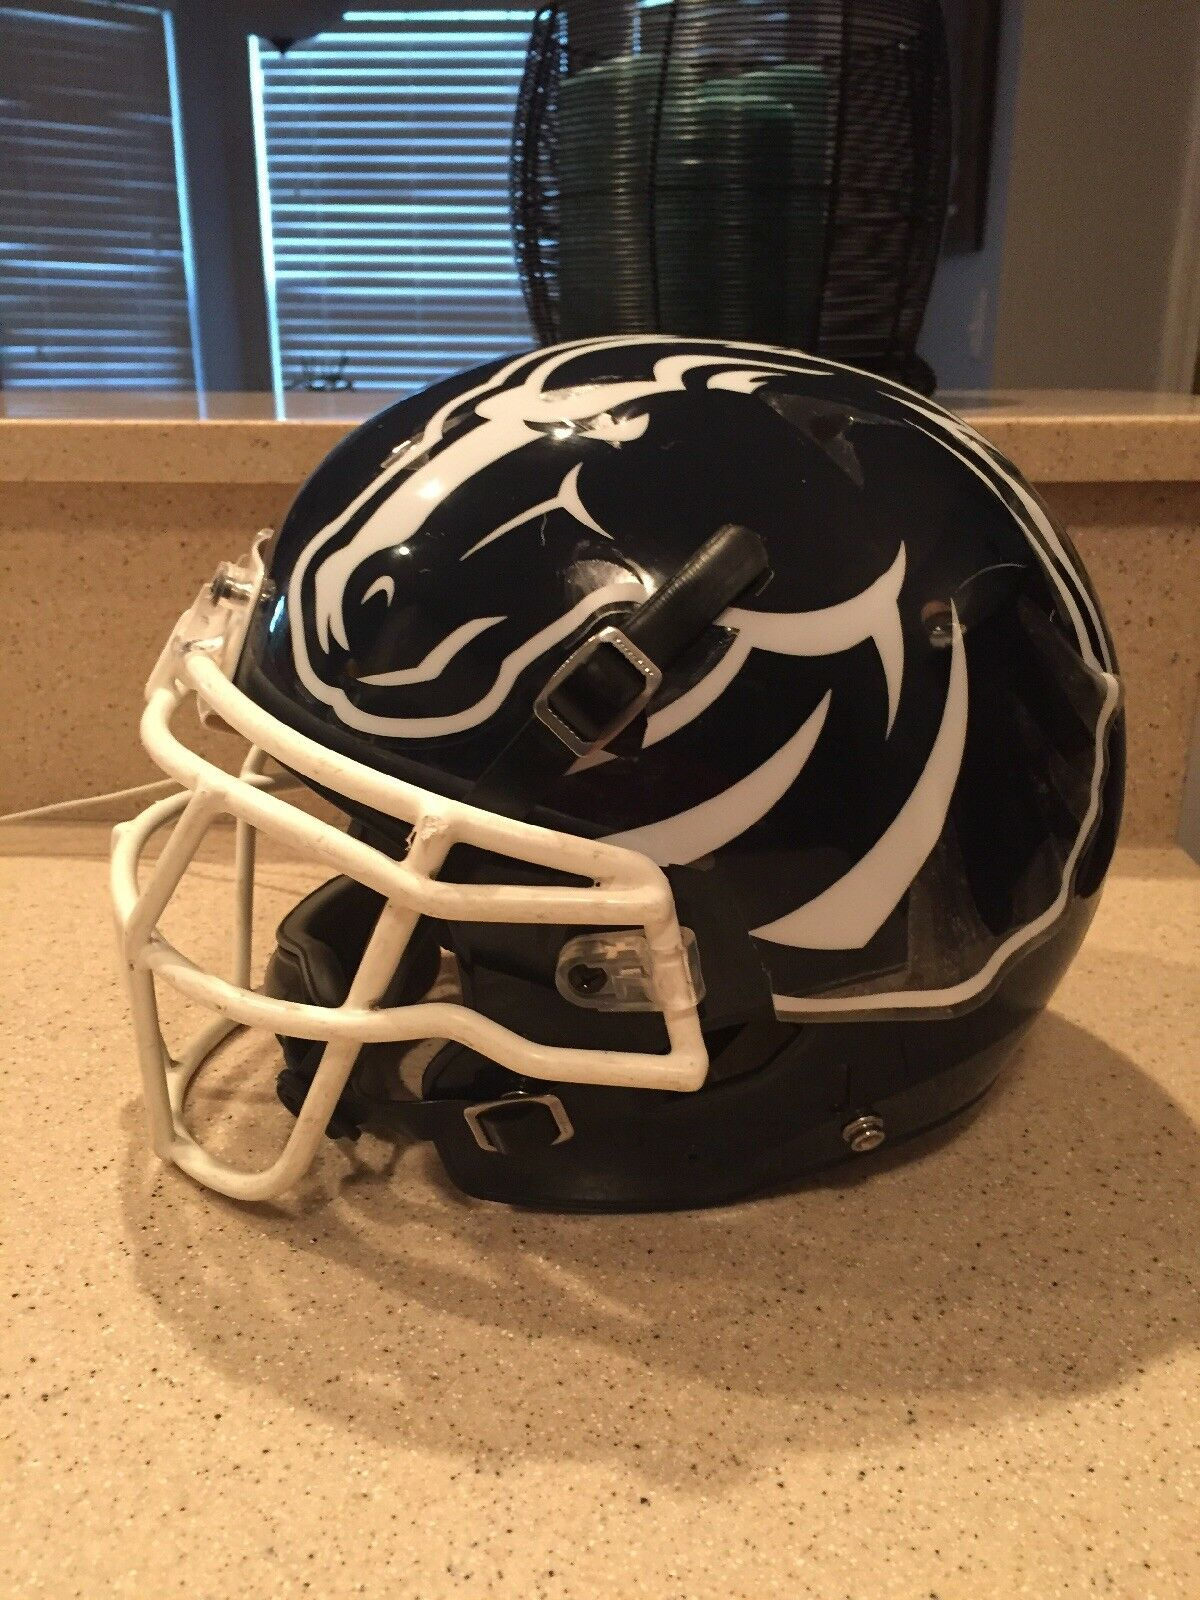 BOISE STATE FOOTBALL HELMET WITH DECALS